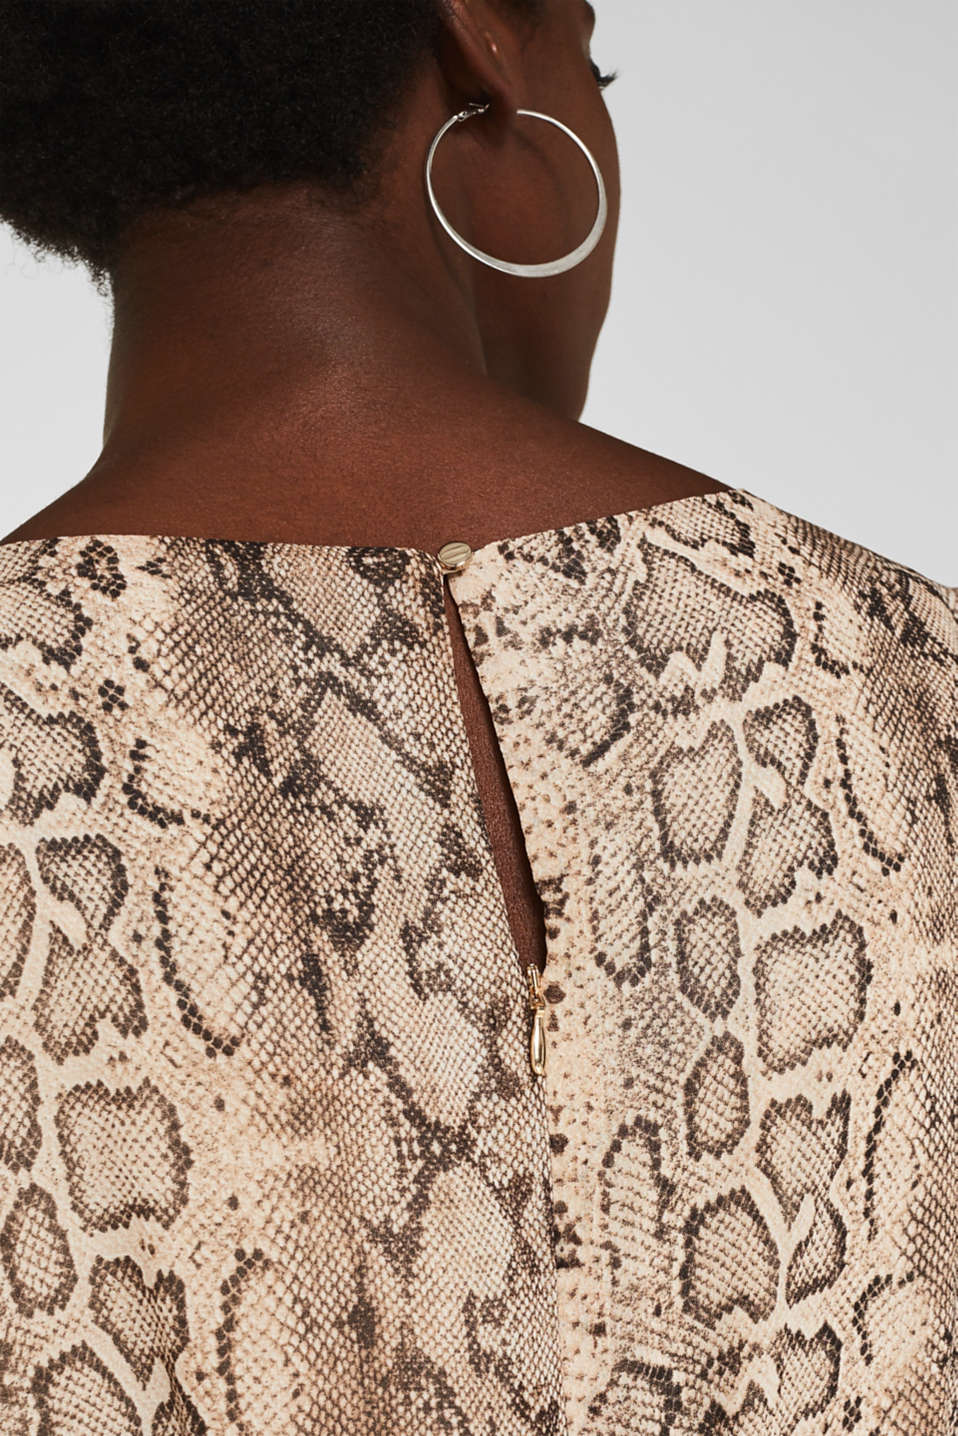 Chiffon dress with a snakeskin print and belt, LIGHT TAUPE 4, detail image number 5